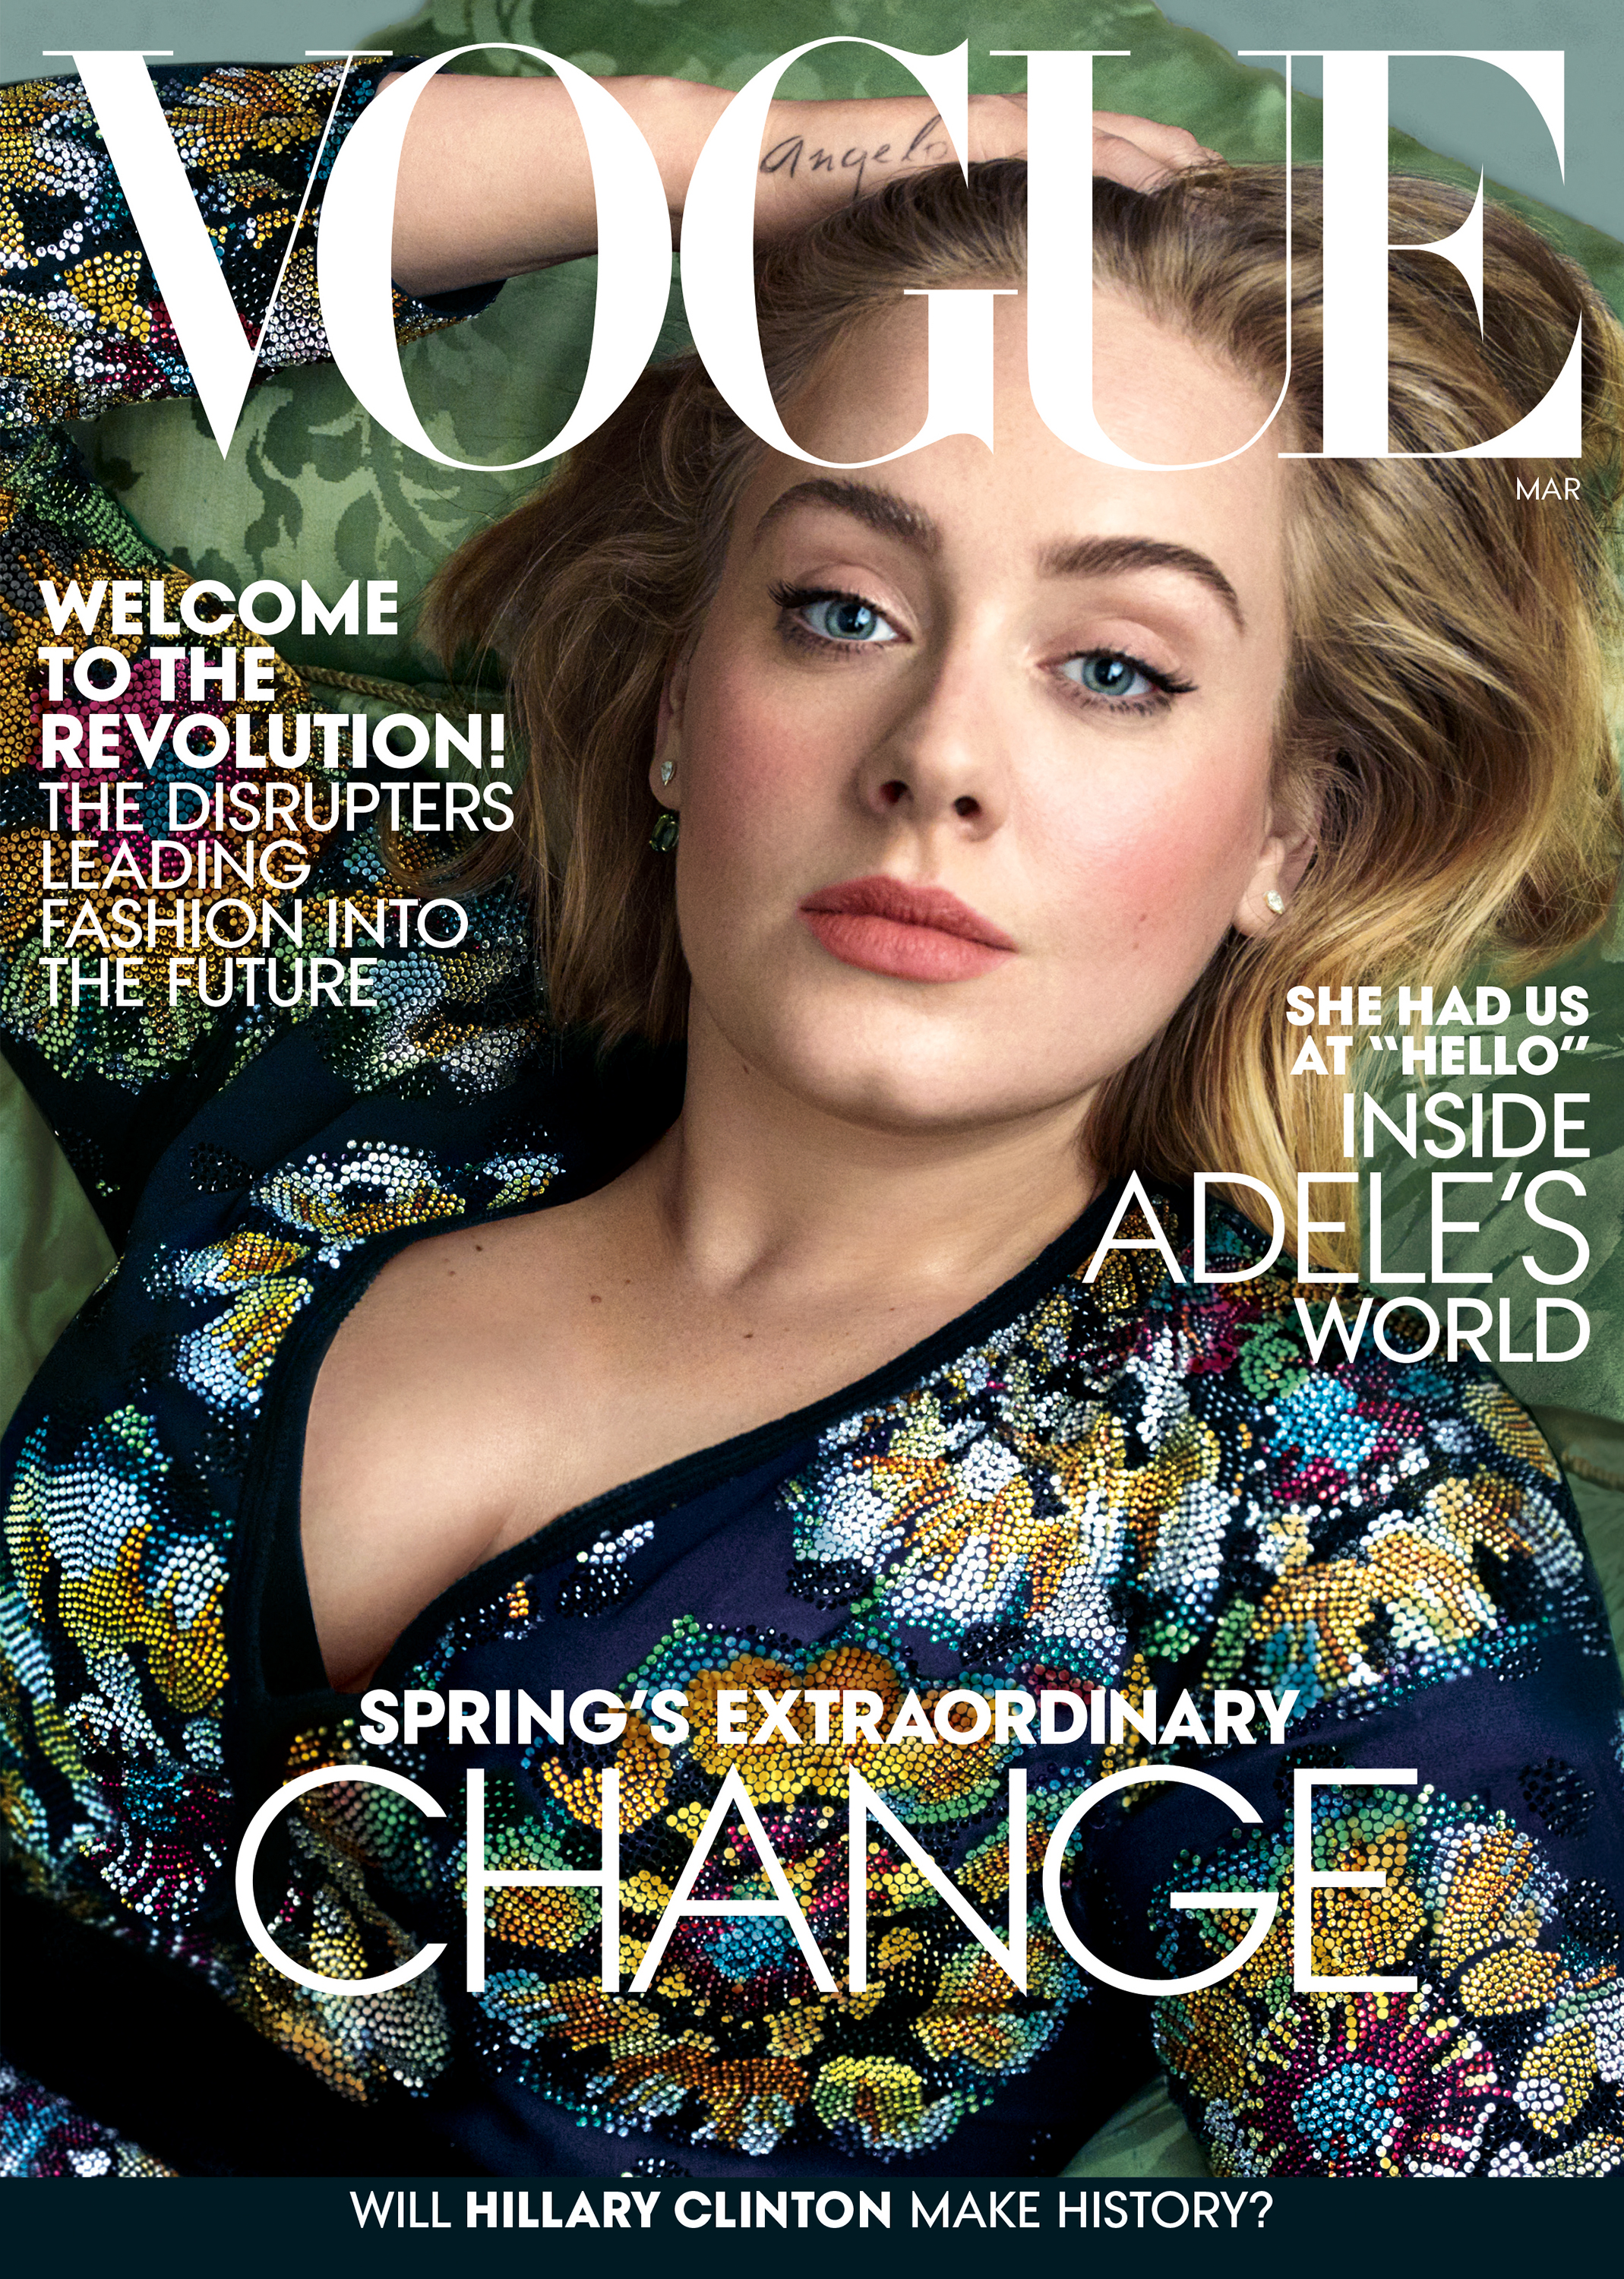 Vogue Nabs The Most Ad Pages In March For Fashion Magazines Wwd